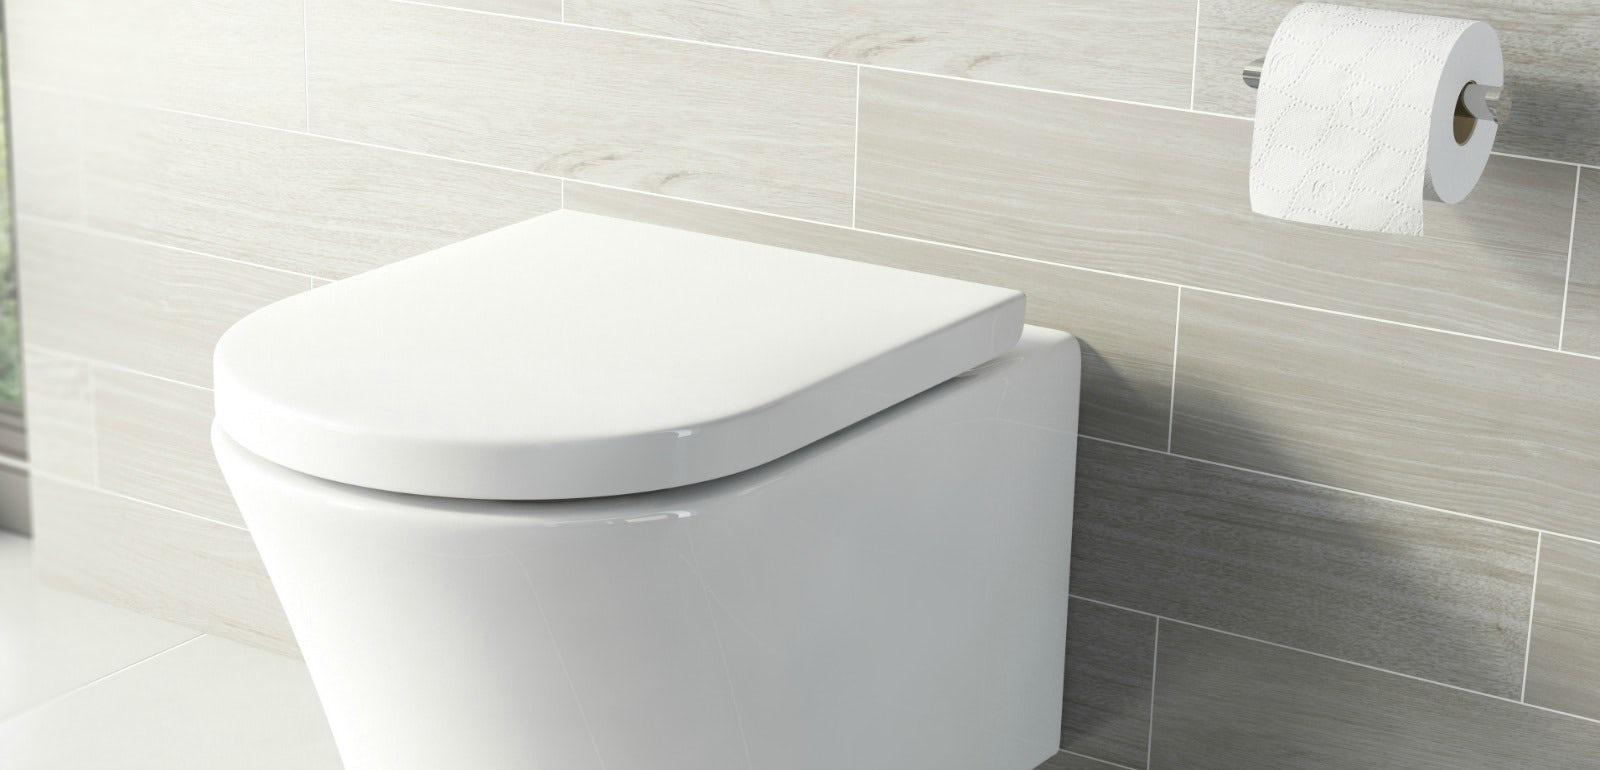 5 reasons to choose a wall hung toilet